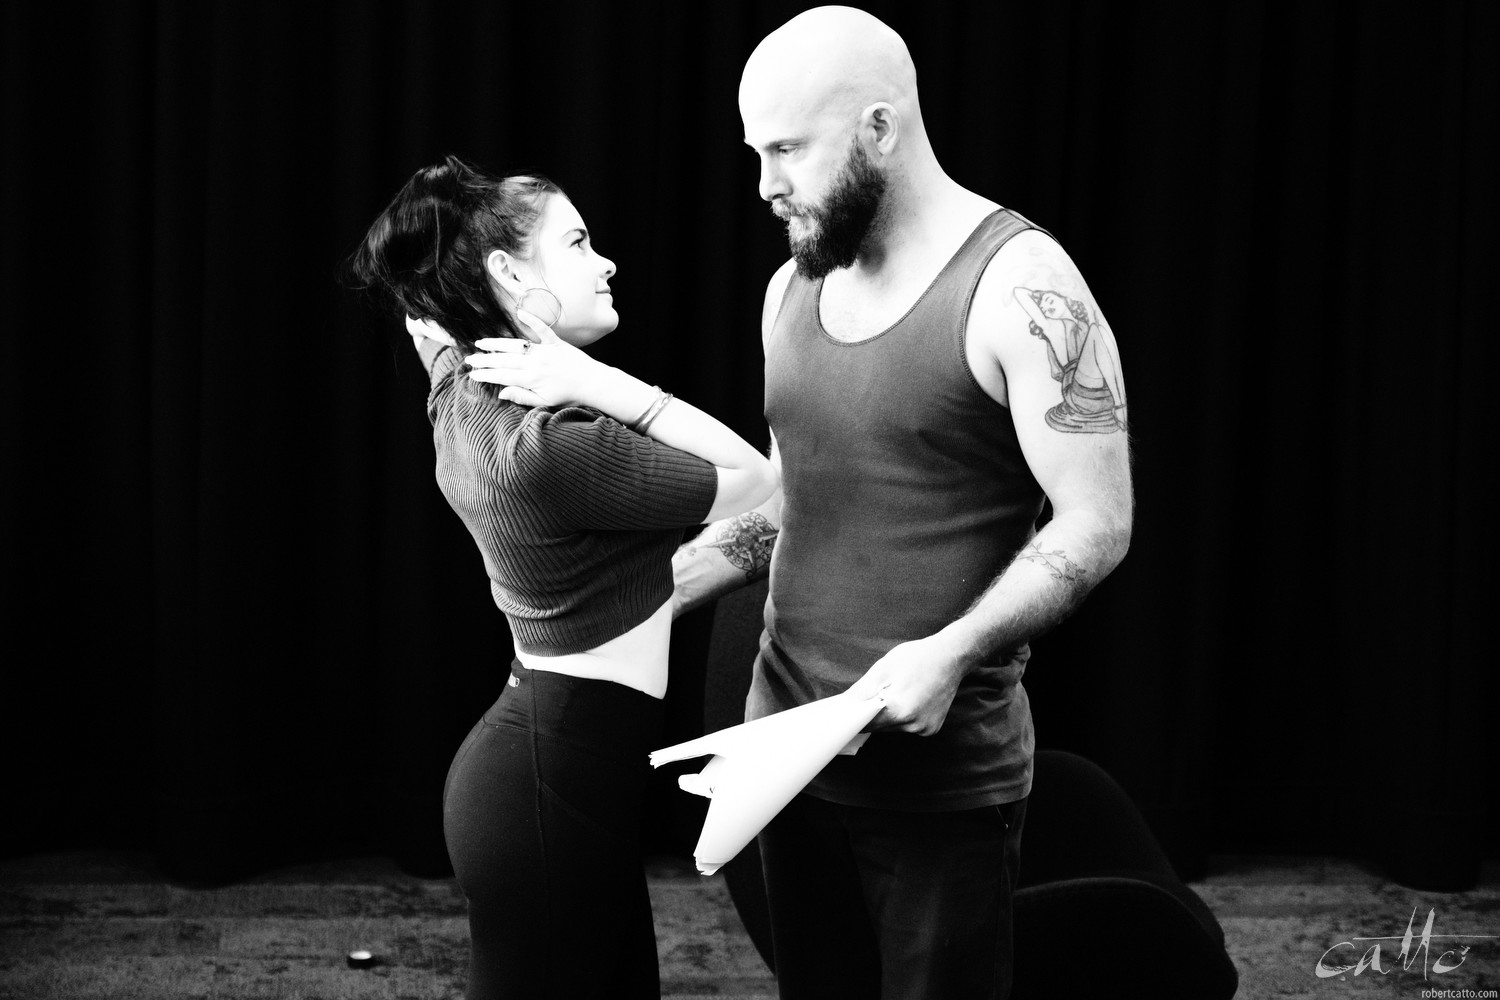 Chloe Bayliss and Yure Covich in rehearsal for Home Invasion (Fuji X-H1 with 16-55mm f/2.8)